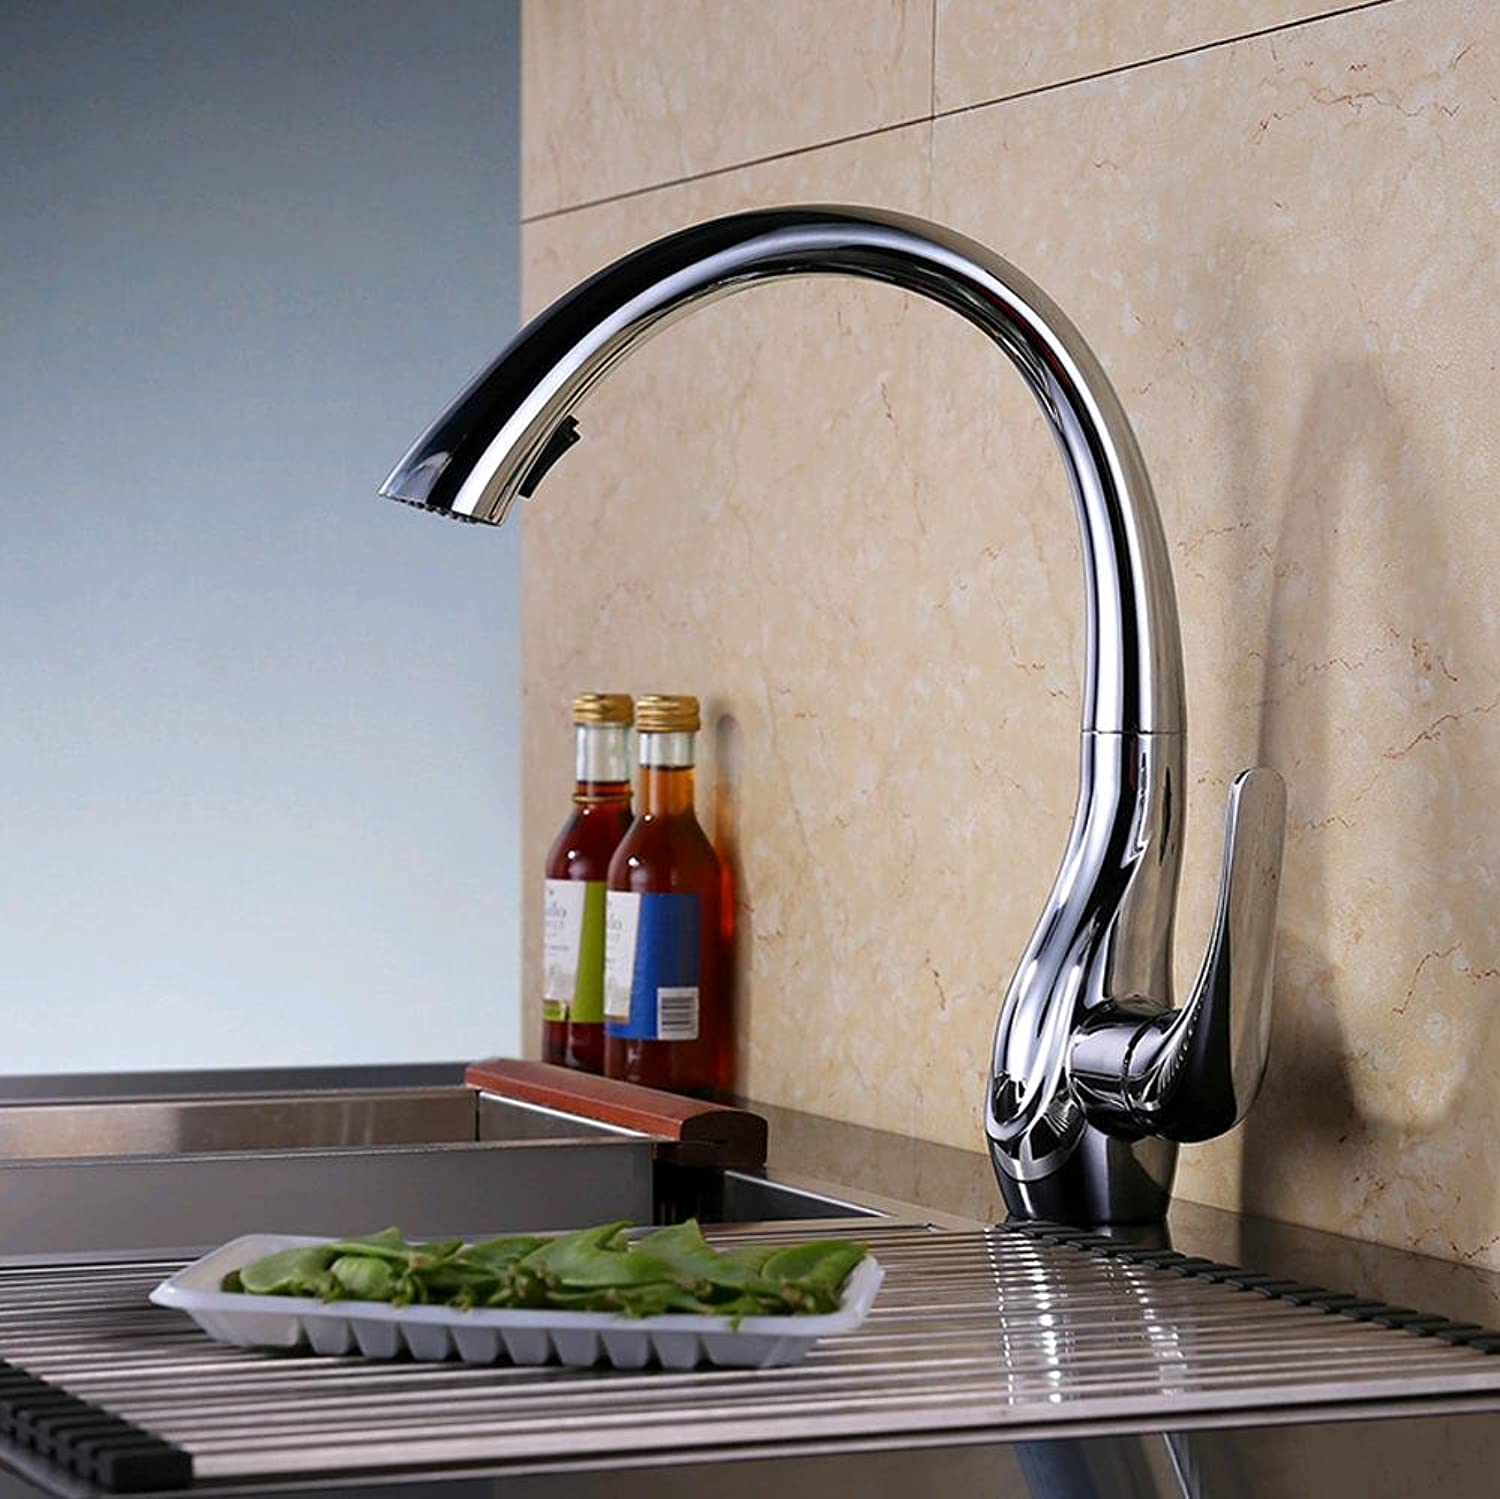 BingHaiY 360 ?? sink faucet kitchen pull faucet hot and cold faucet lift type easy to install European kitchen faucet